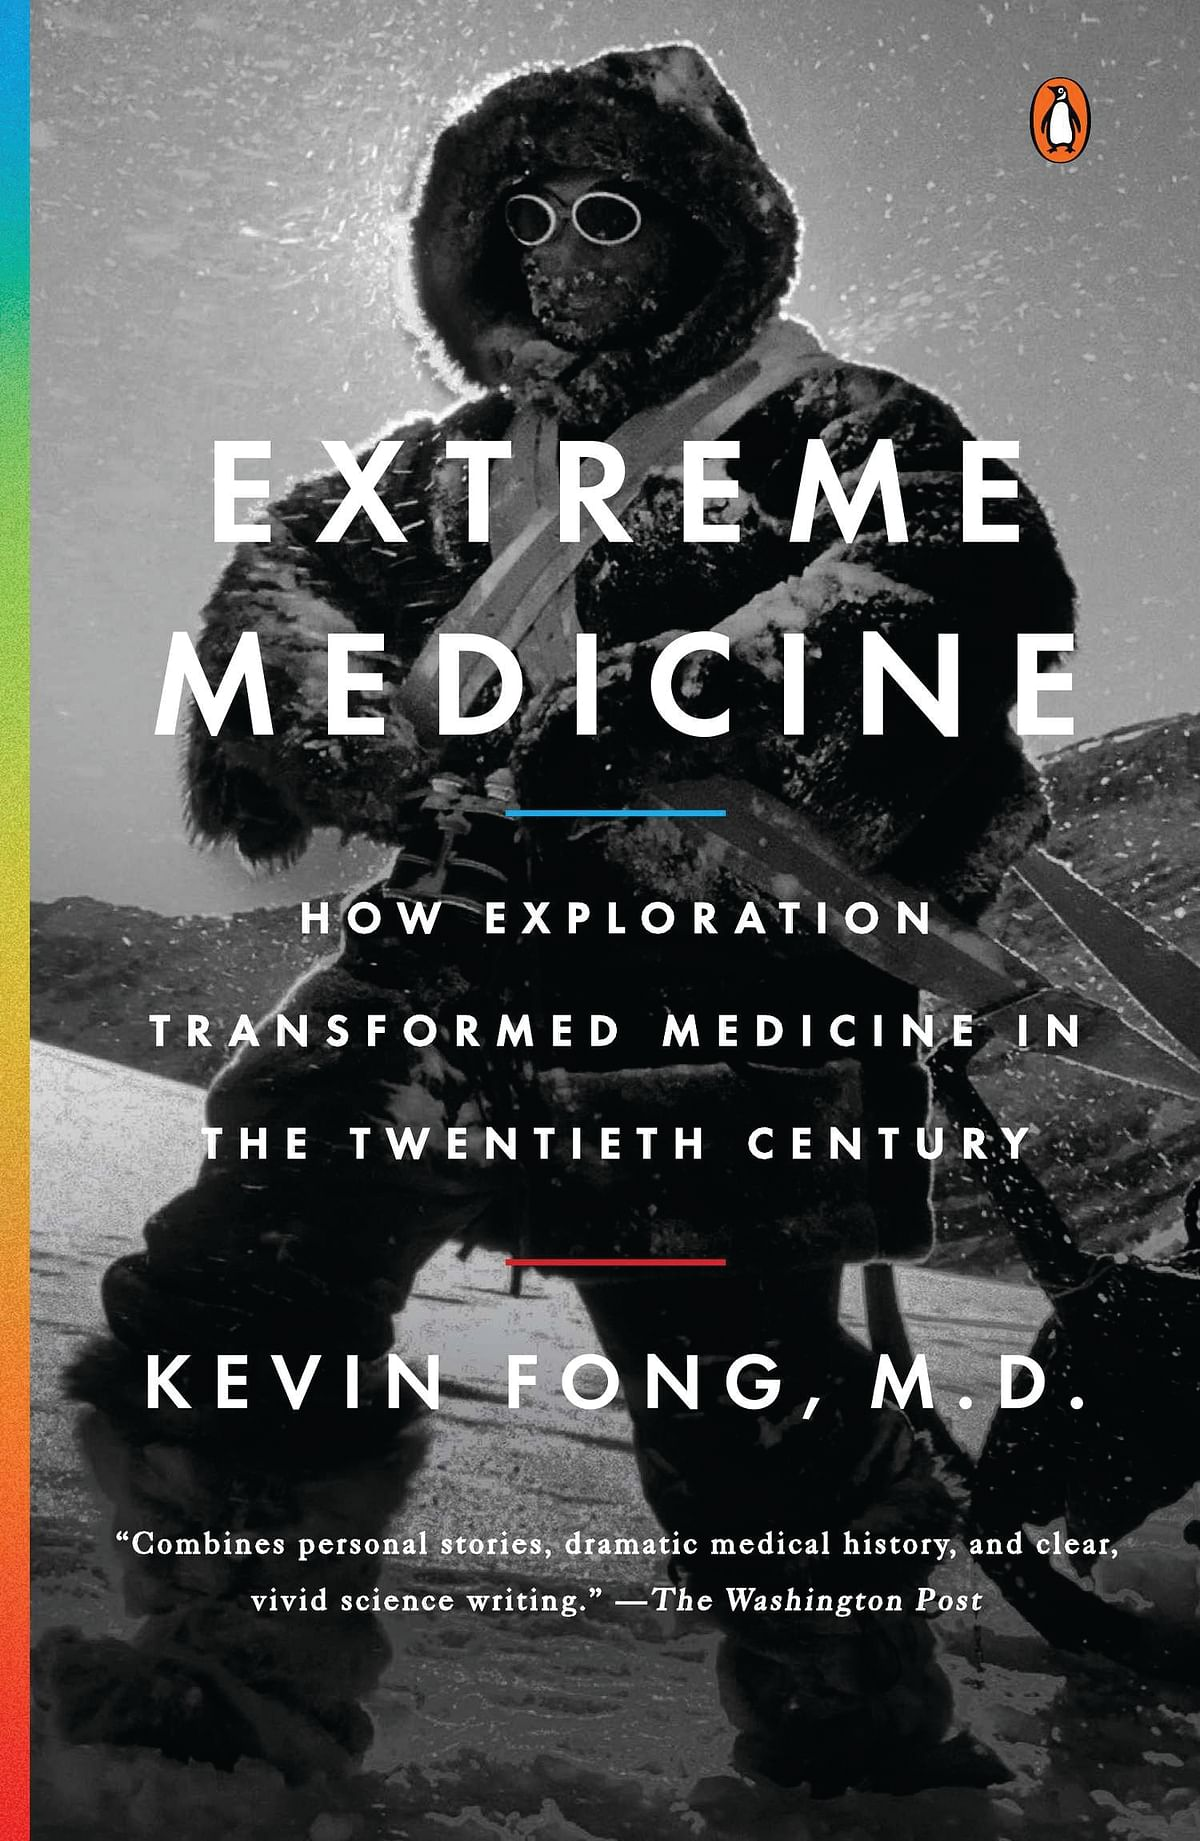 EXTREME MEDICINE How Exploration Transformed Medicine in the Twentieth Century  Written By: Kevin Fong